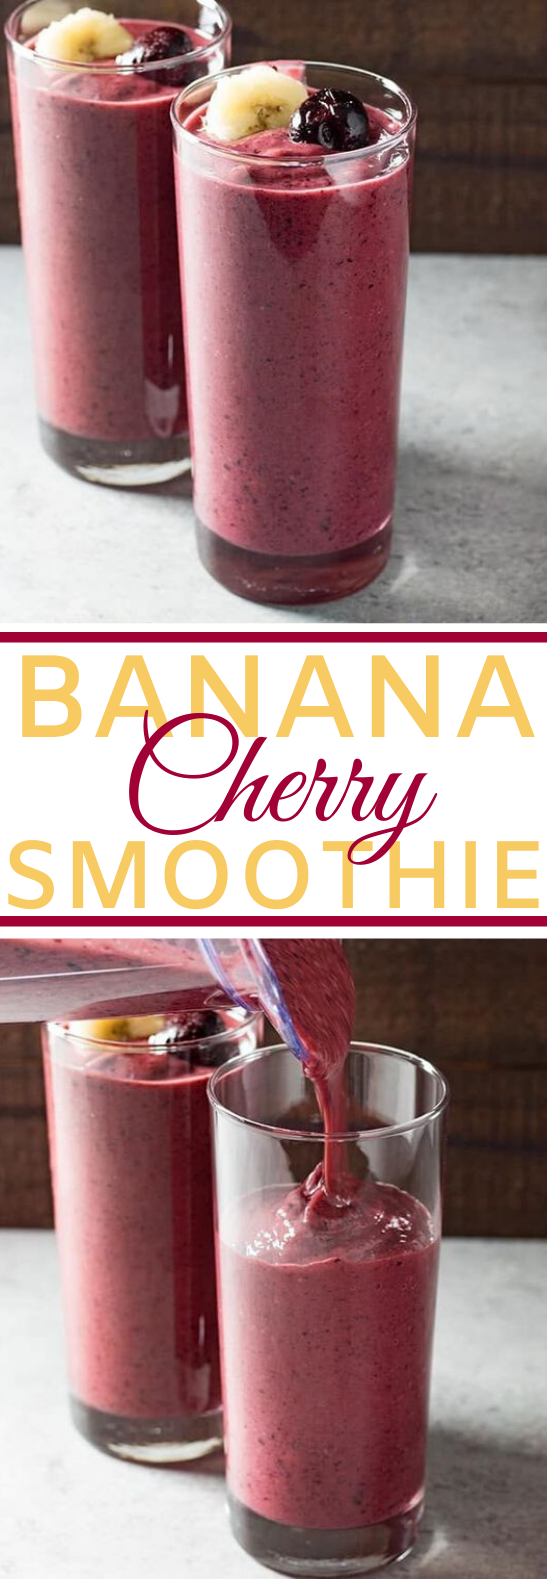 Banana Cherry Smoothie #drinks #healthy #smoothies #breakfast #juice